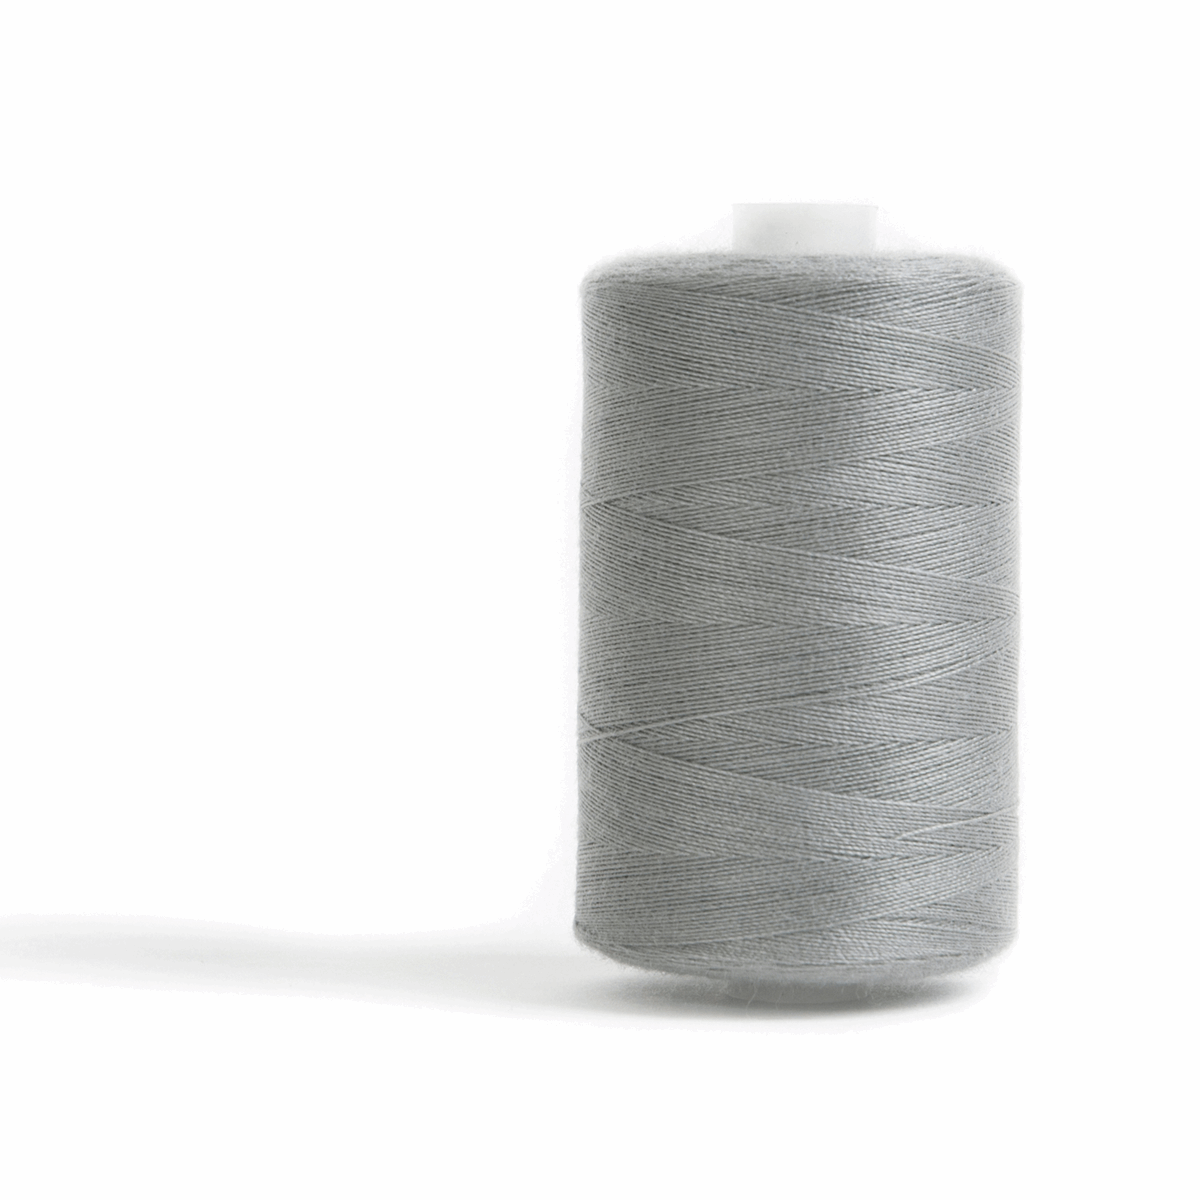 Thread 1000m Extra Large - Mid Grey - for Sewing and Overlocking